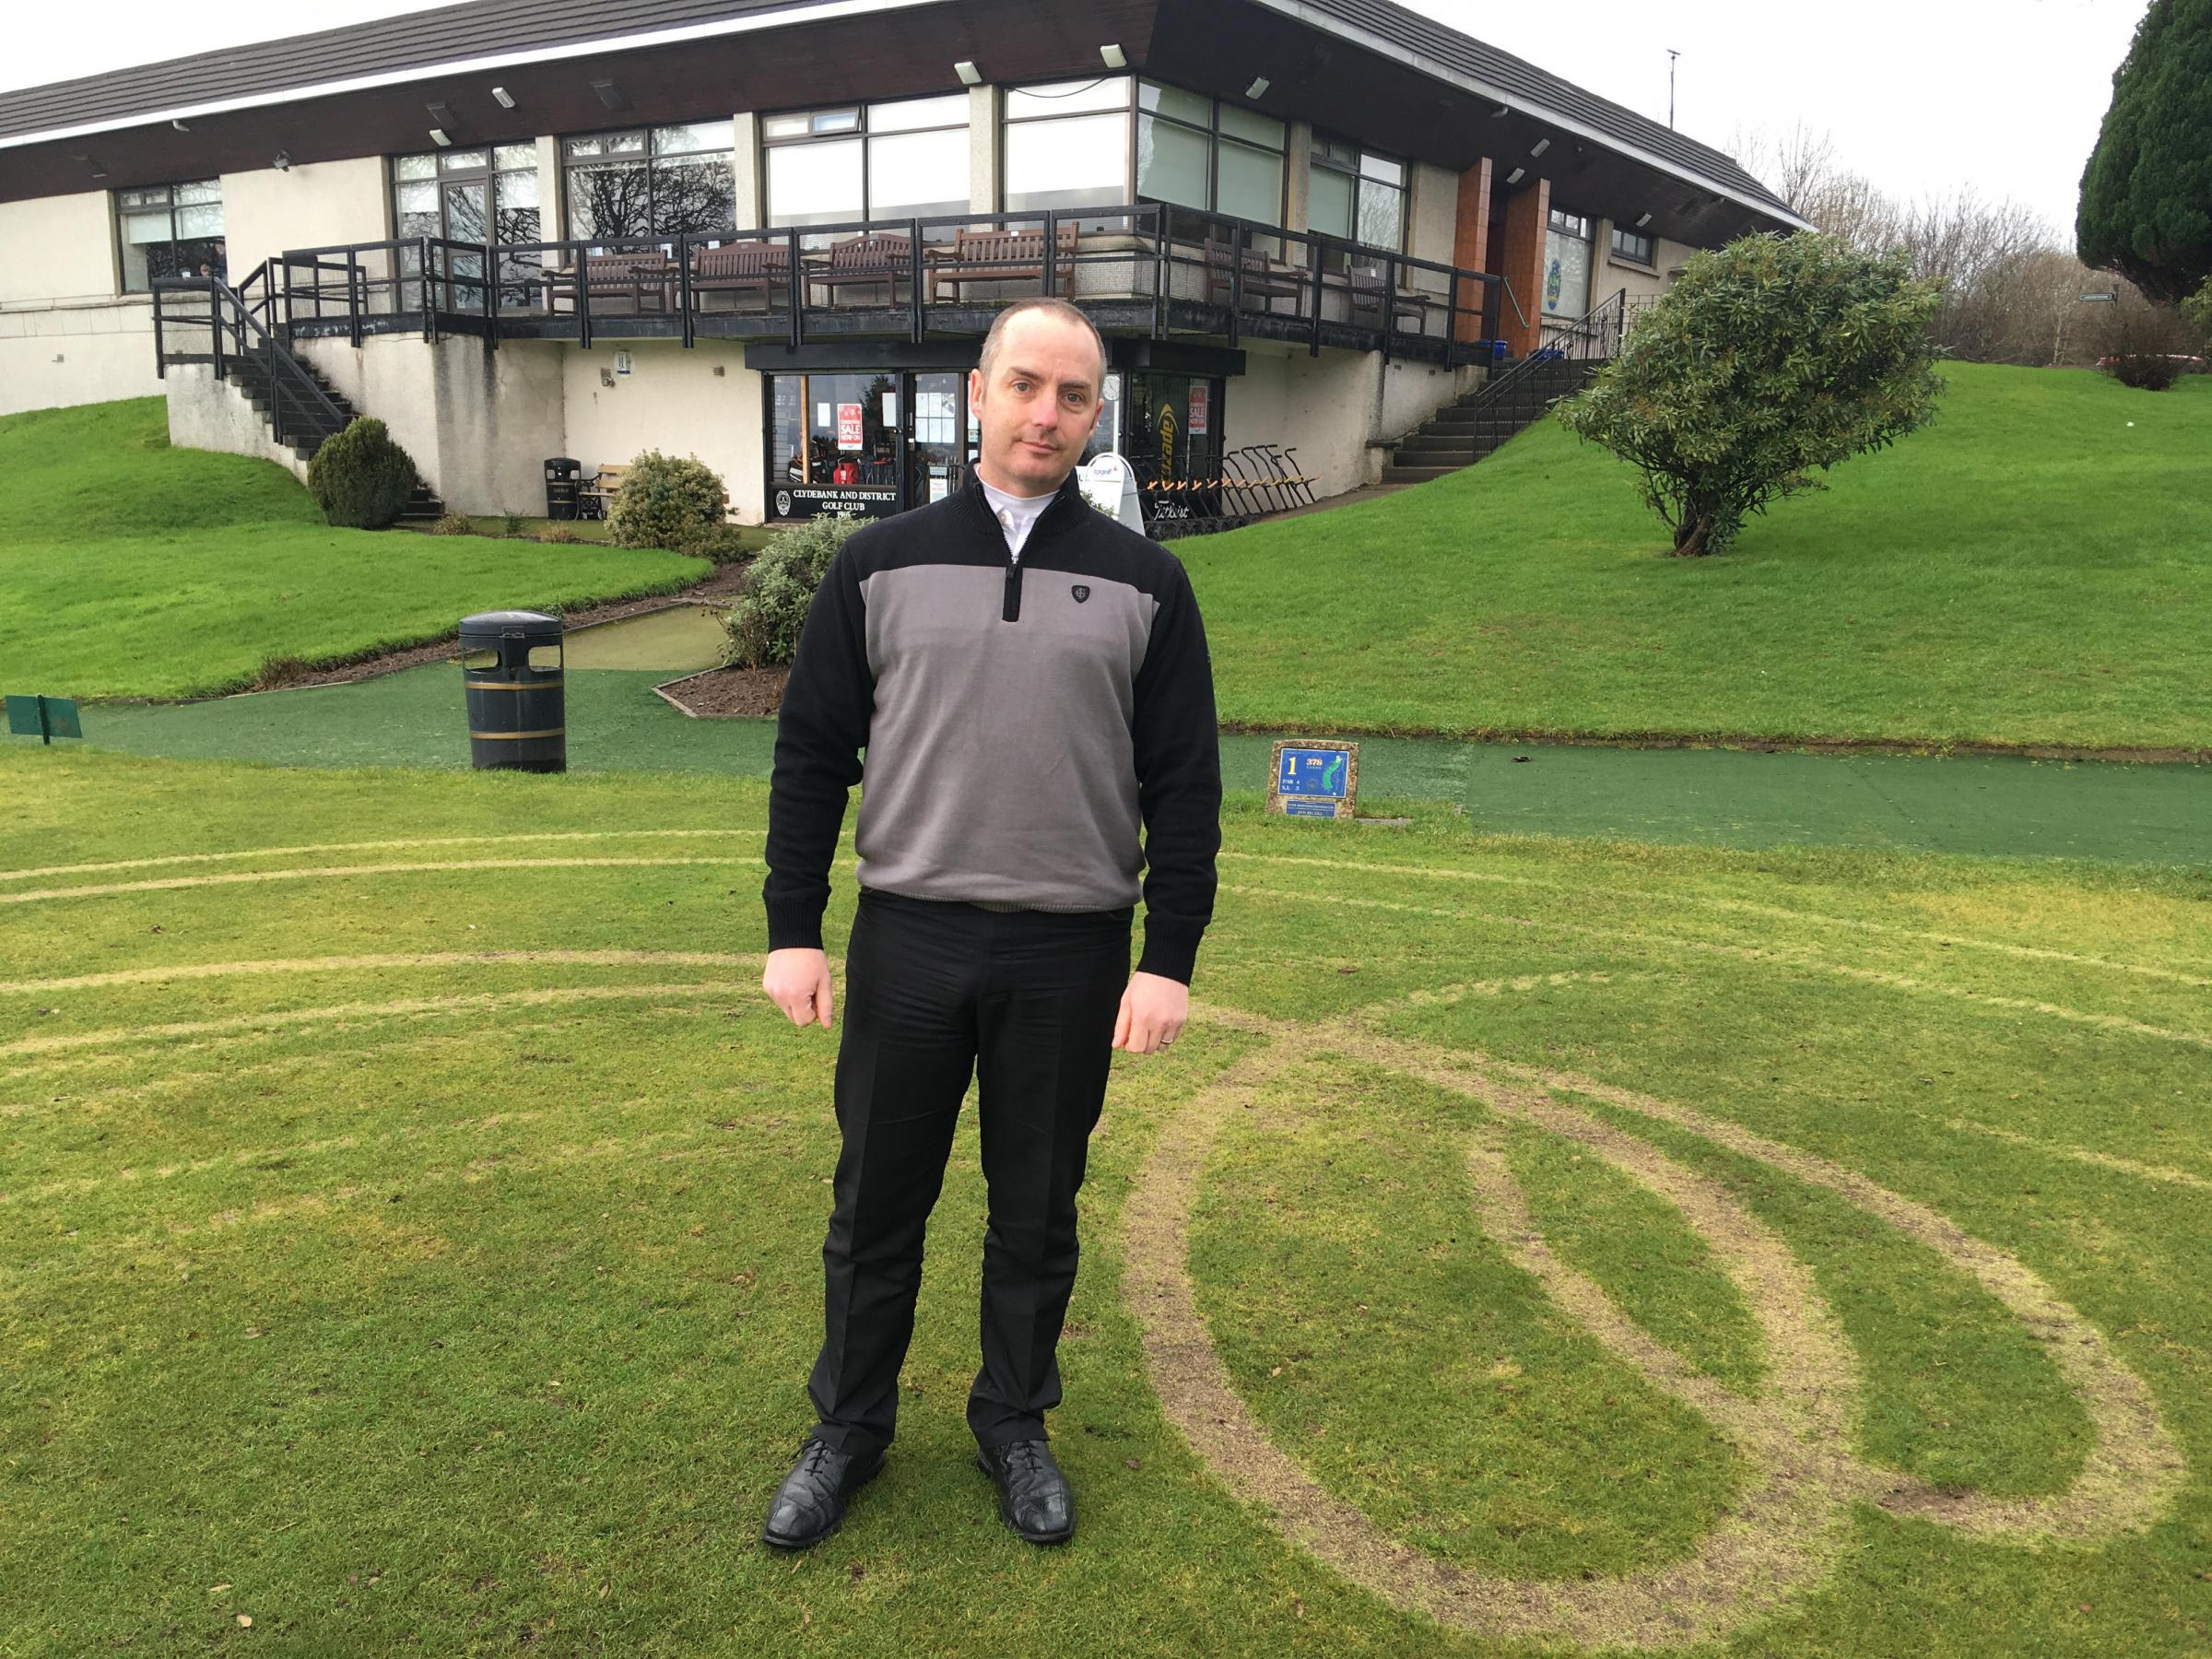 Staff at Clydebank and District Golf Club have hit out at thoughtless quadbike drivers